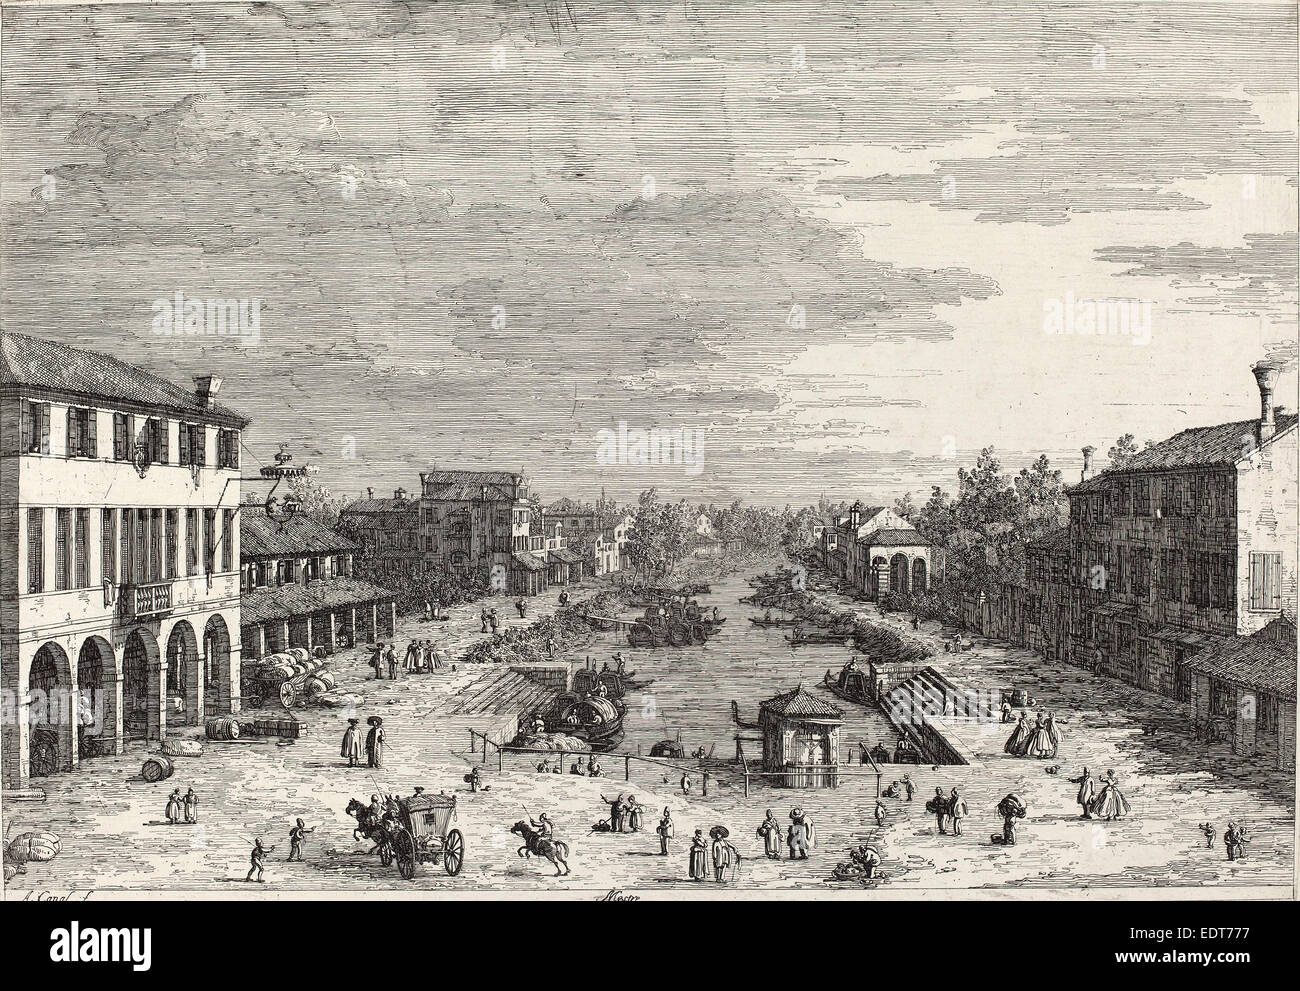 Canaletto (Italian, 1697 - 1768), Mestre, c. 1735-1746, etching - Stock Image